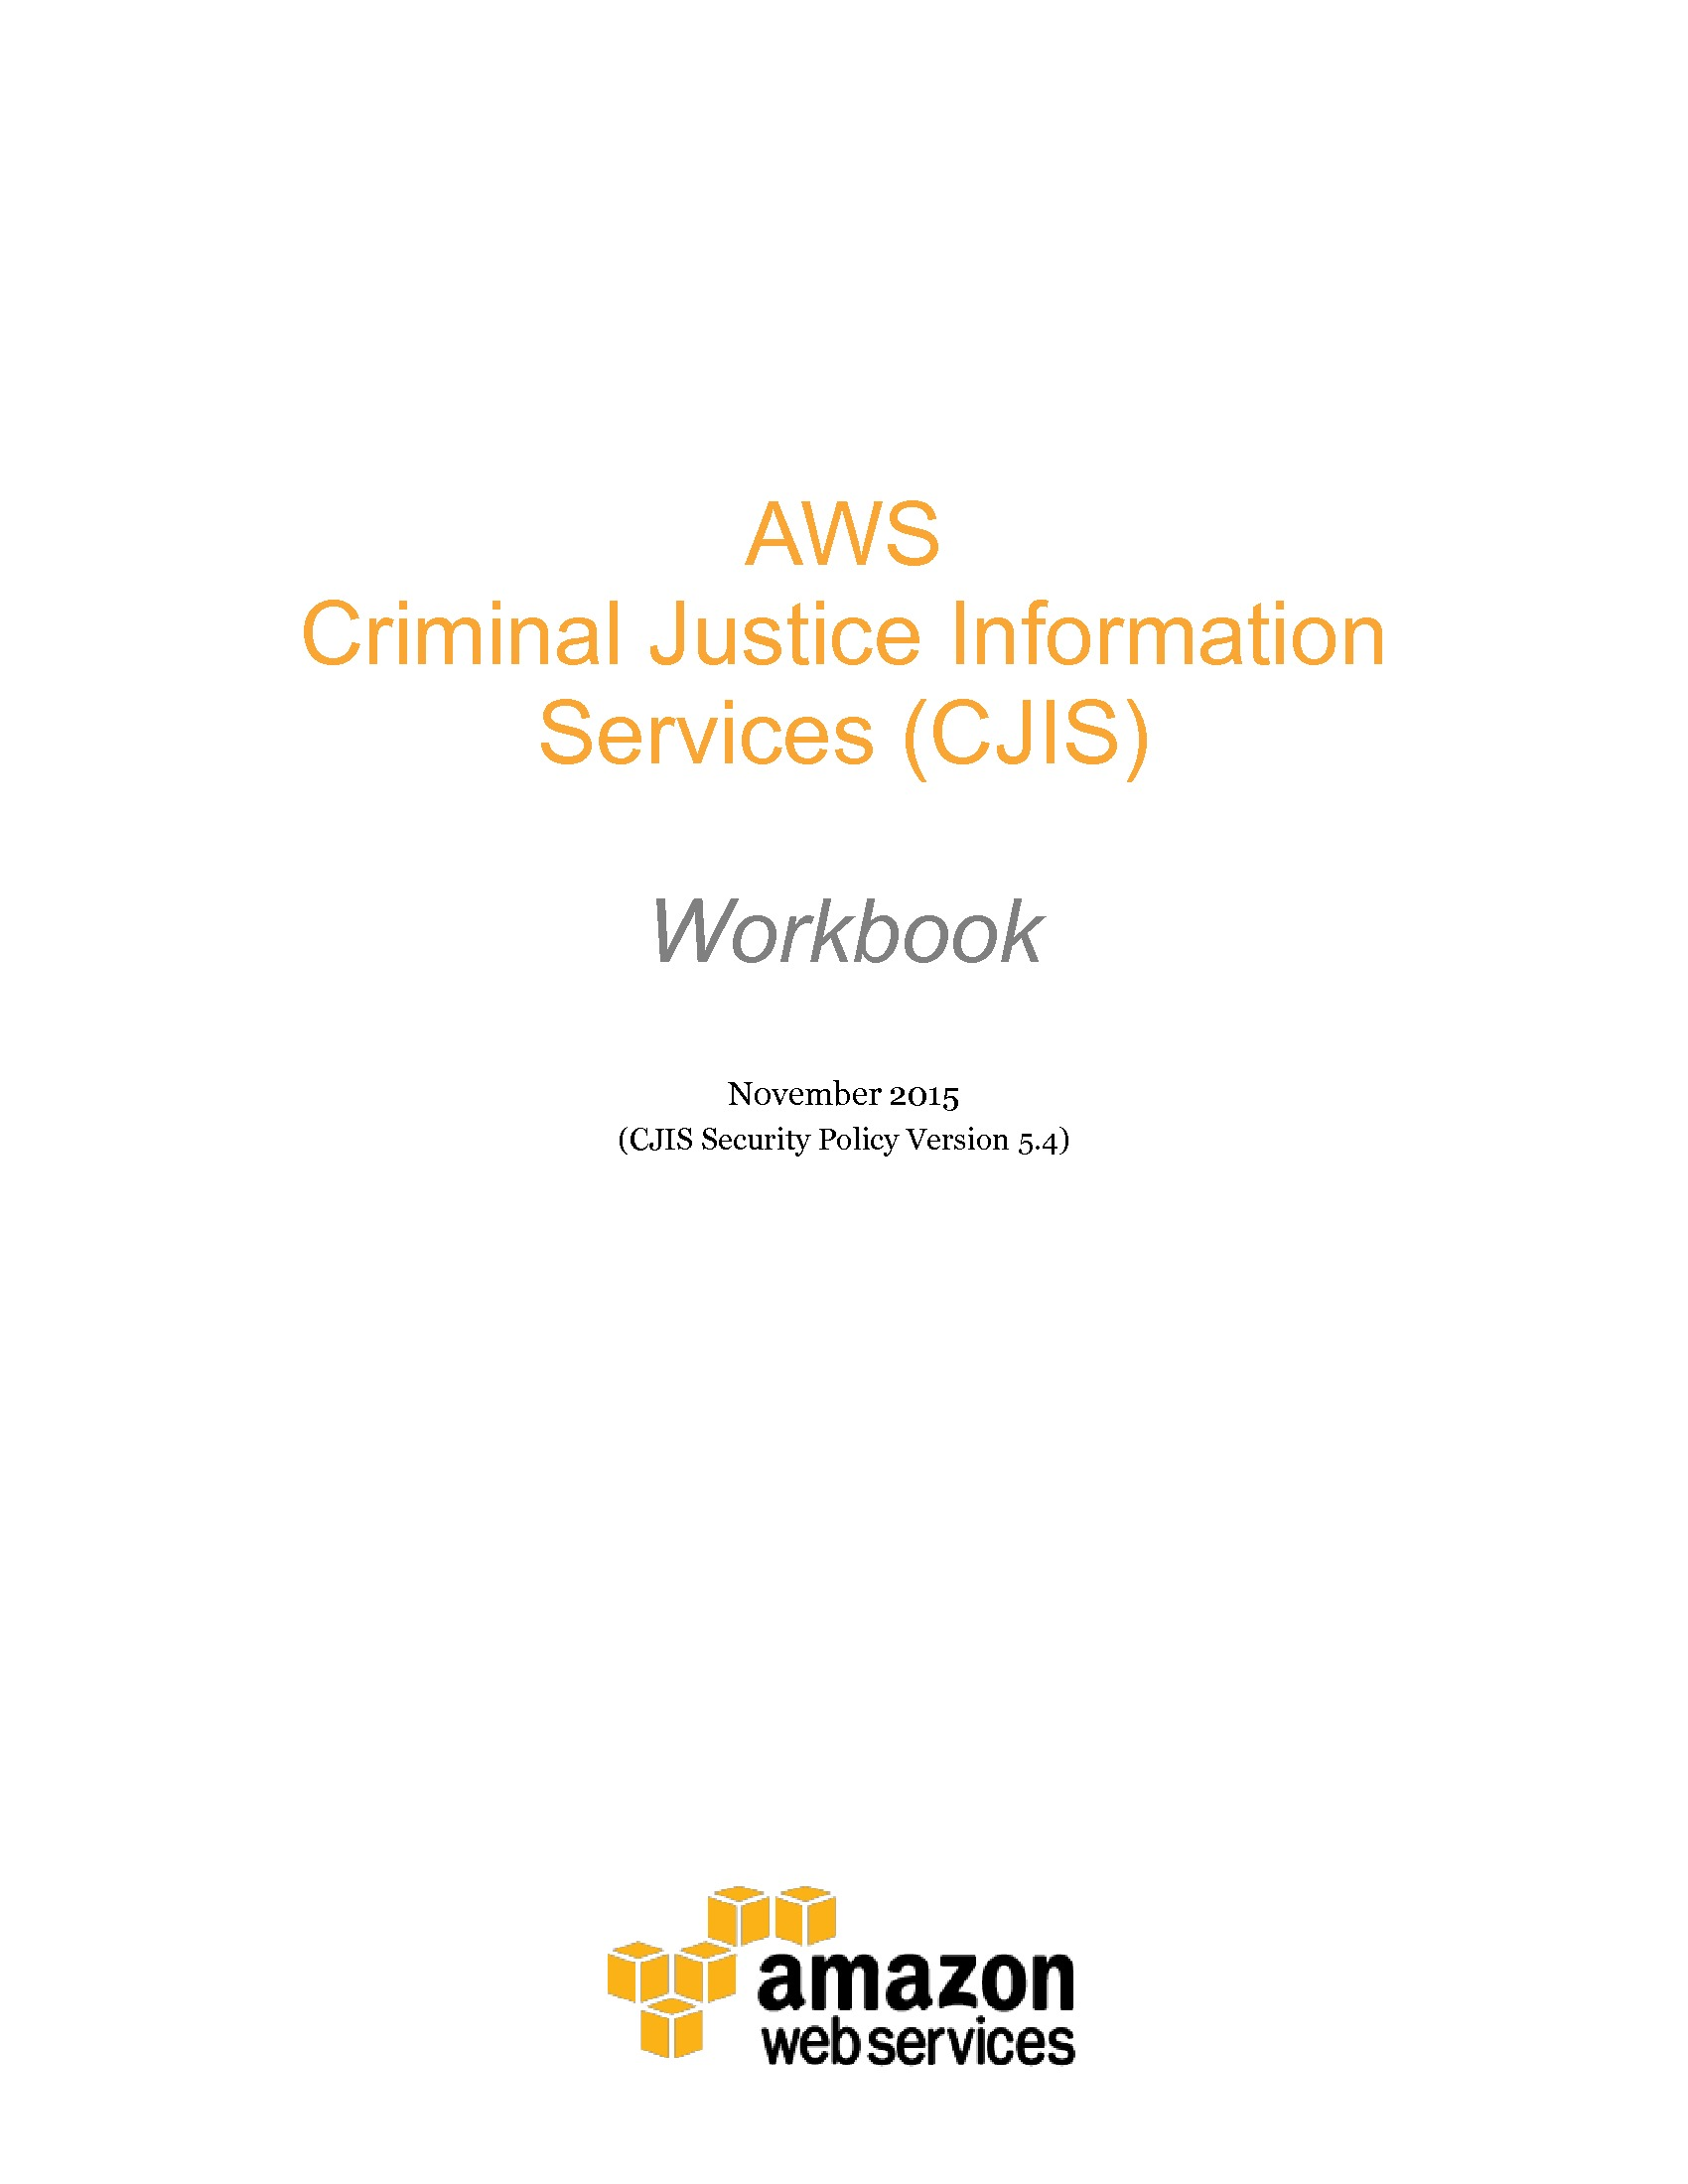 GT - Amazon - 2019 Public Safety Channel - AWS CJIS Security Policy Workbook